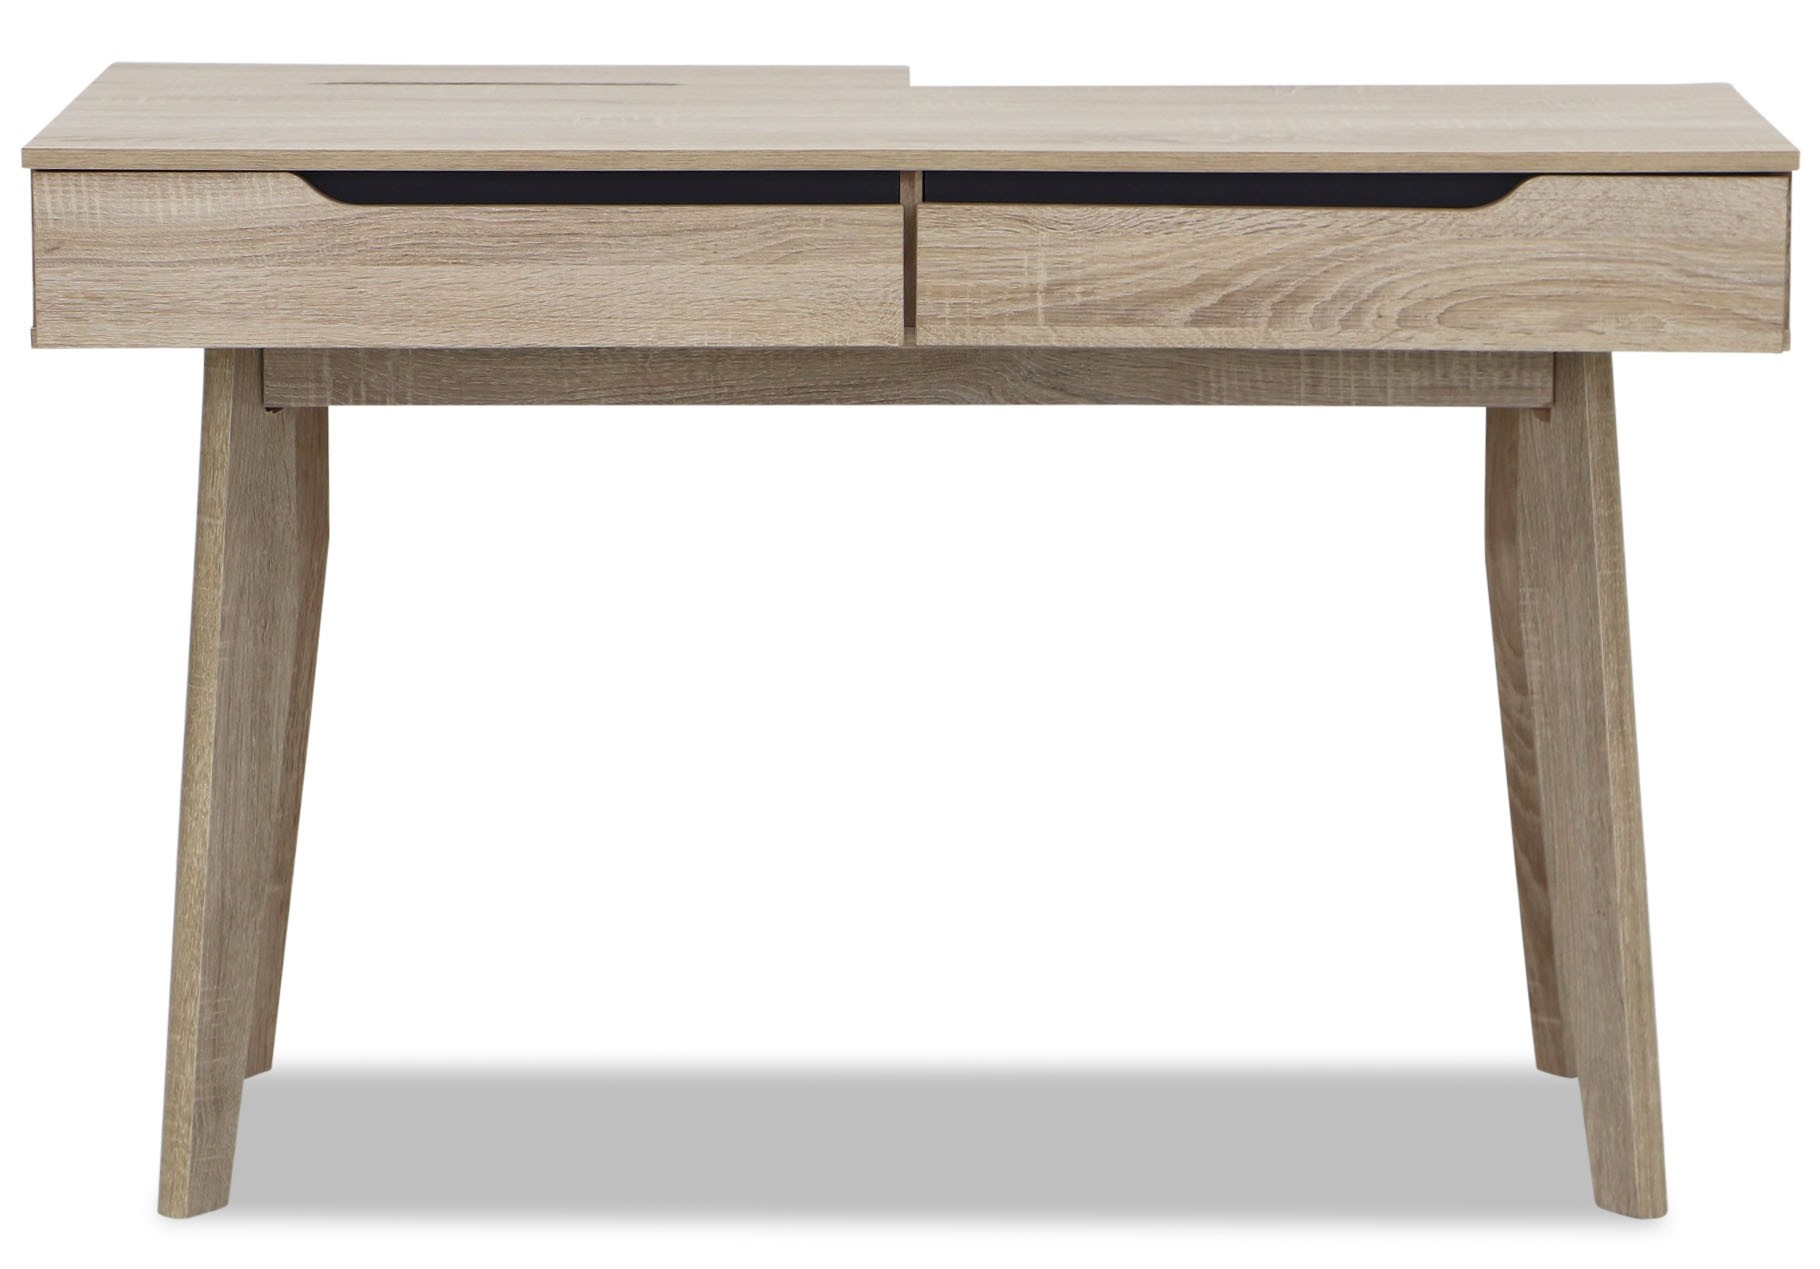 table workspace desk models model fbx poly obj low study wooden asset furniture walnut wood office tga